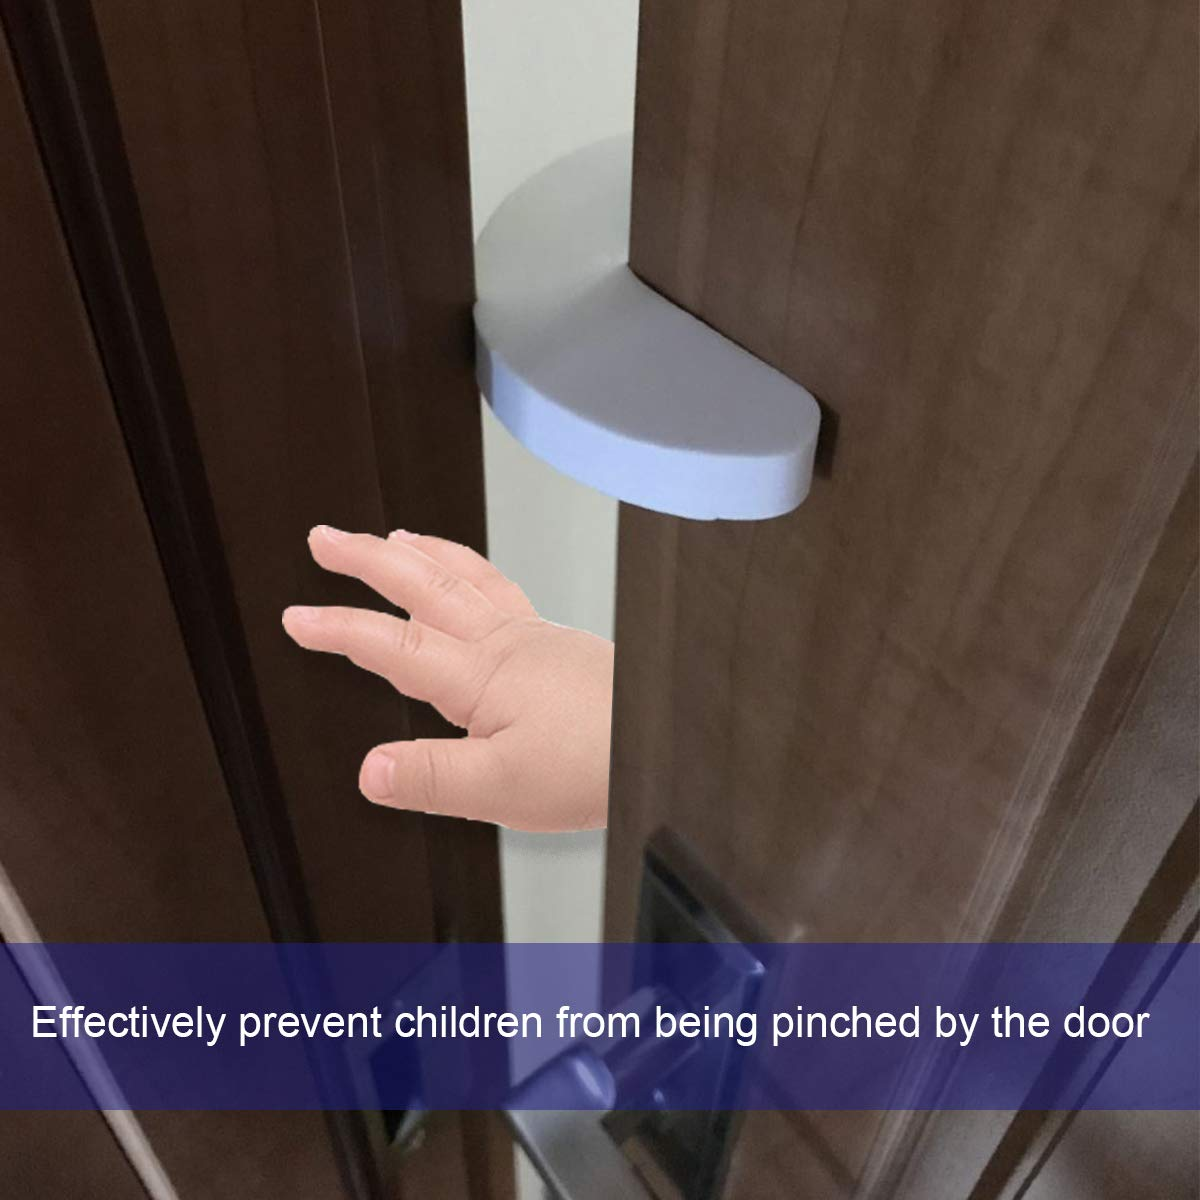 Prevent Child from Getting Locked in the Room Baby Child Safety 6PCS FINENIC Finger Pinch Guard Door Preventer Prevent Finger from Being Pinched by Impact Doors Soft Durable Foam Door Stopper